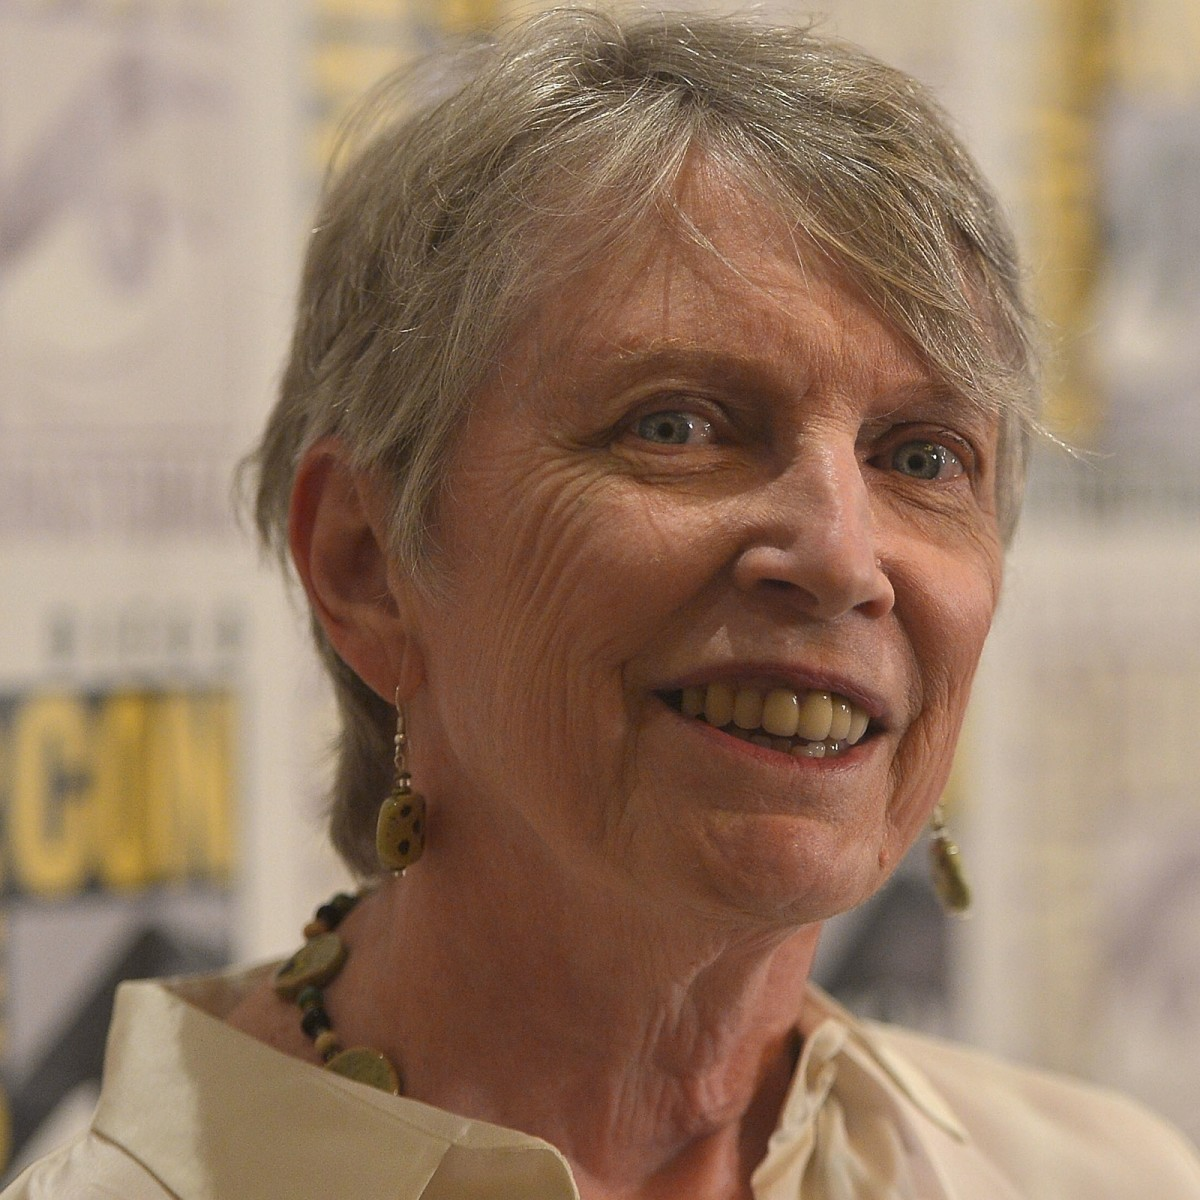 Lois Lowry photo via Getty Images